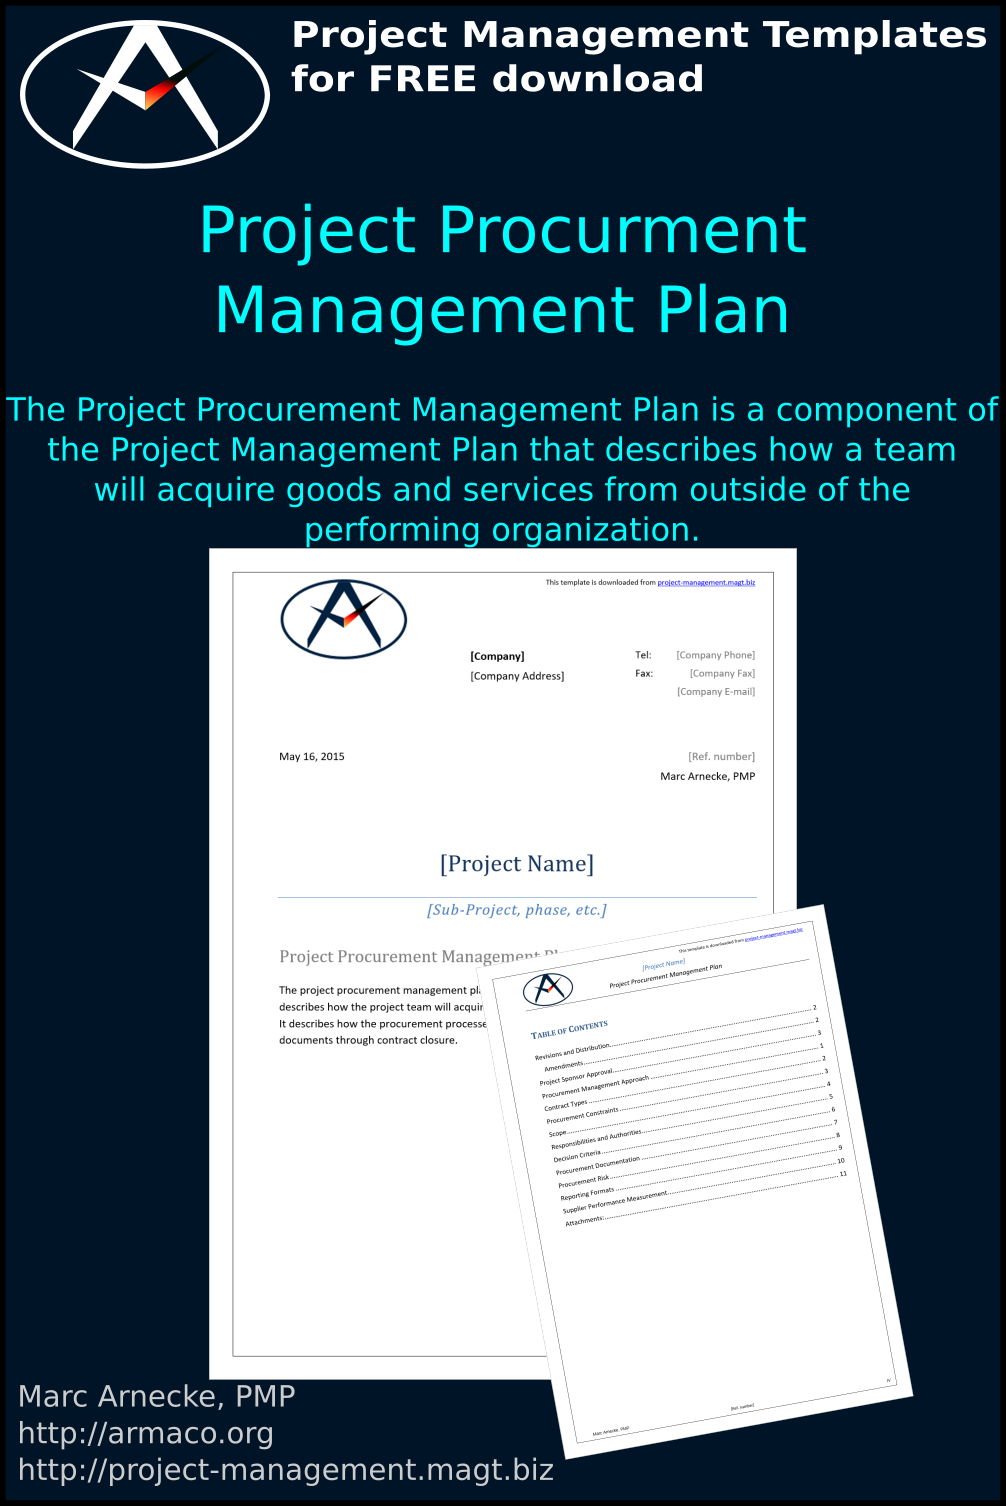 Project Procurement Management Plan Template